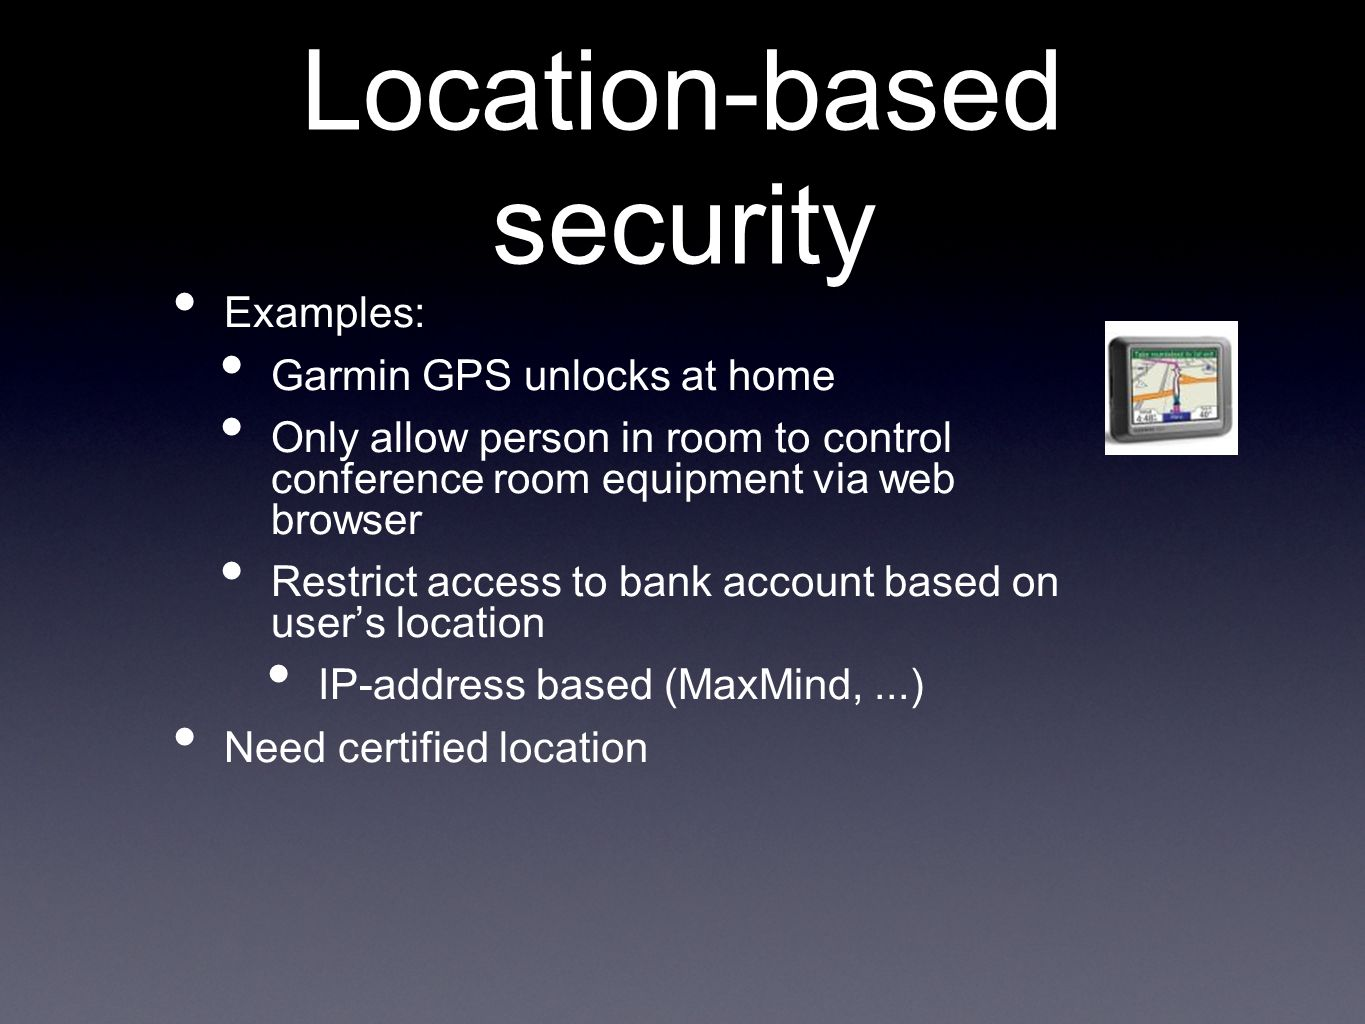 Location-based security Examples: Garmin GPS unlocks at home Only allow person in room to control conference room equipment via web browser Restrict access to bank account based on users location IP-address based (MaxMind,...) Need certified location